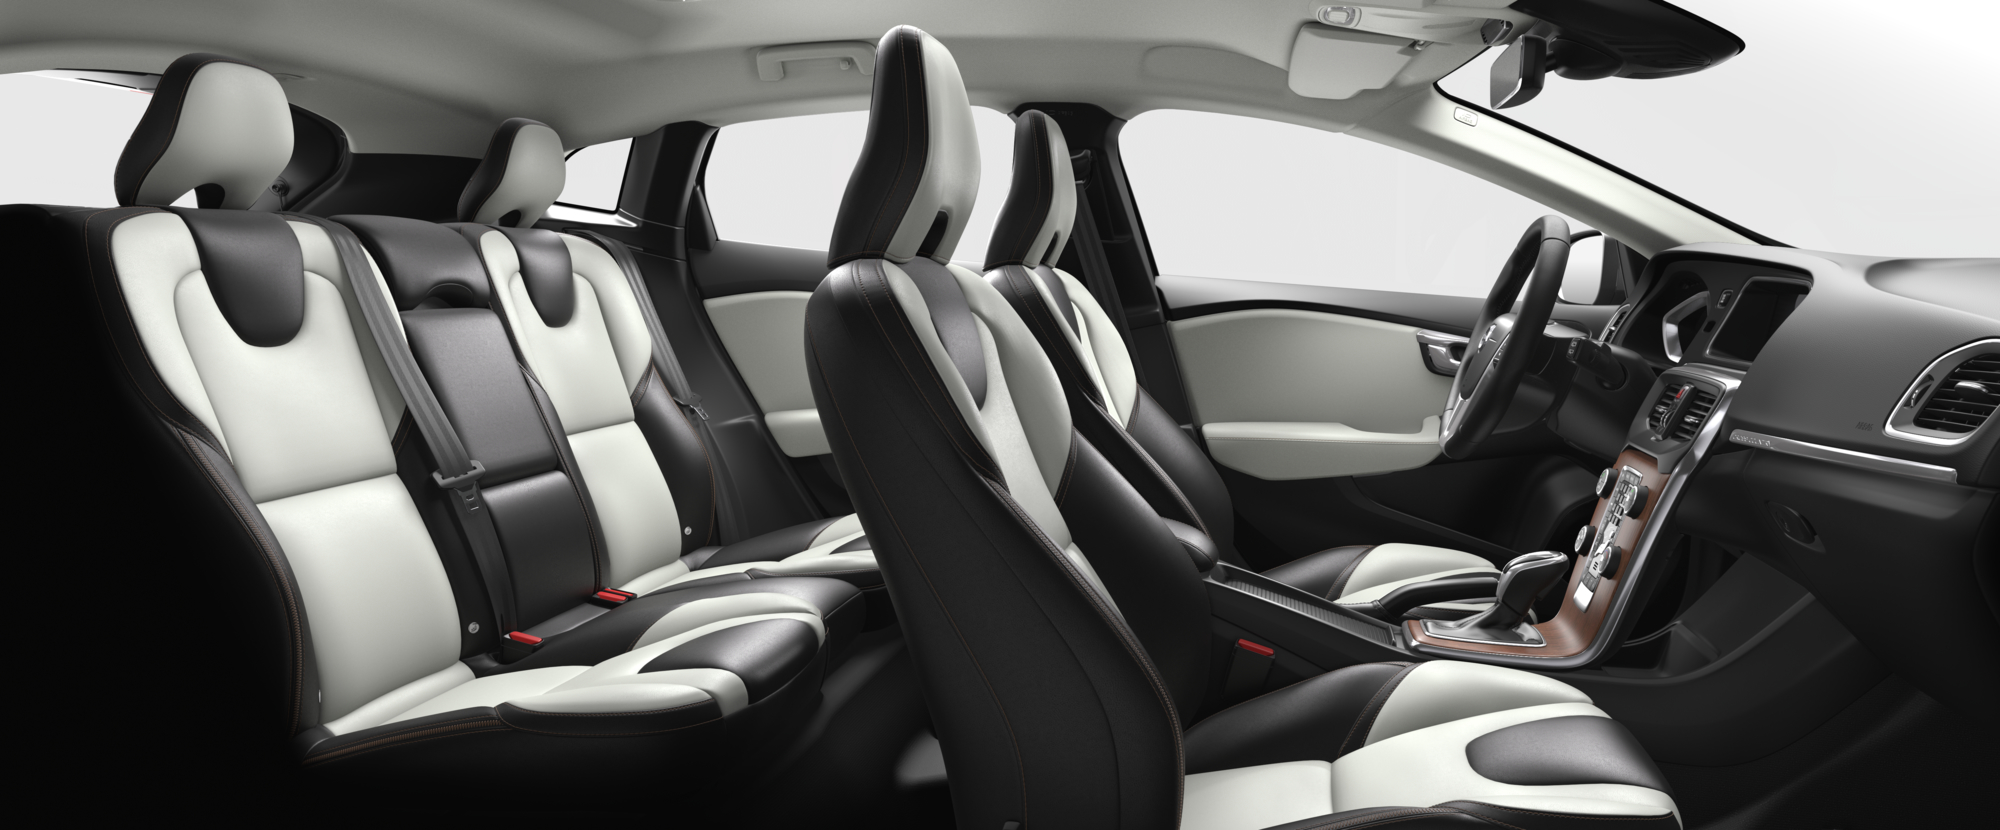 Interior shot of the Volvo V40 Cross Country with Blond / Charcoal Leather Seats